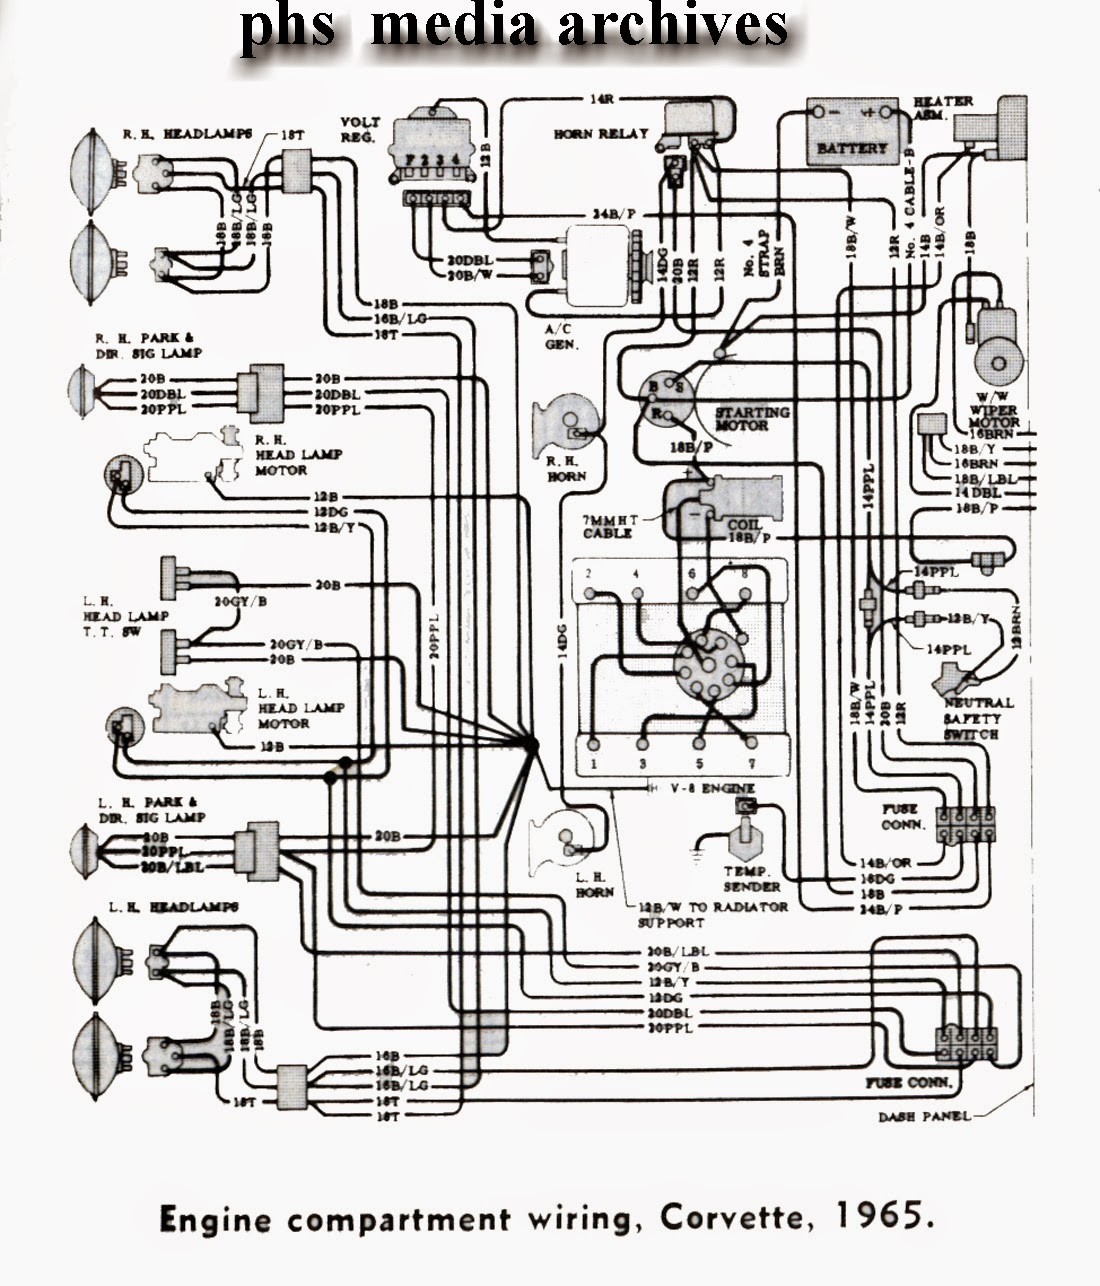 1967 pontiac fuse box diagram wiring schematic all wiring diagramwrg 6242 1967 pontiac fuse box [ 1100 x 1286 Pixel ]